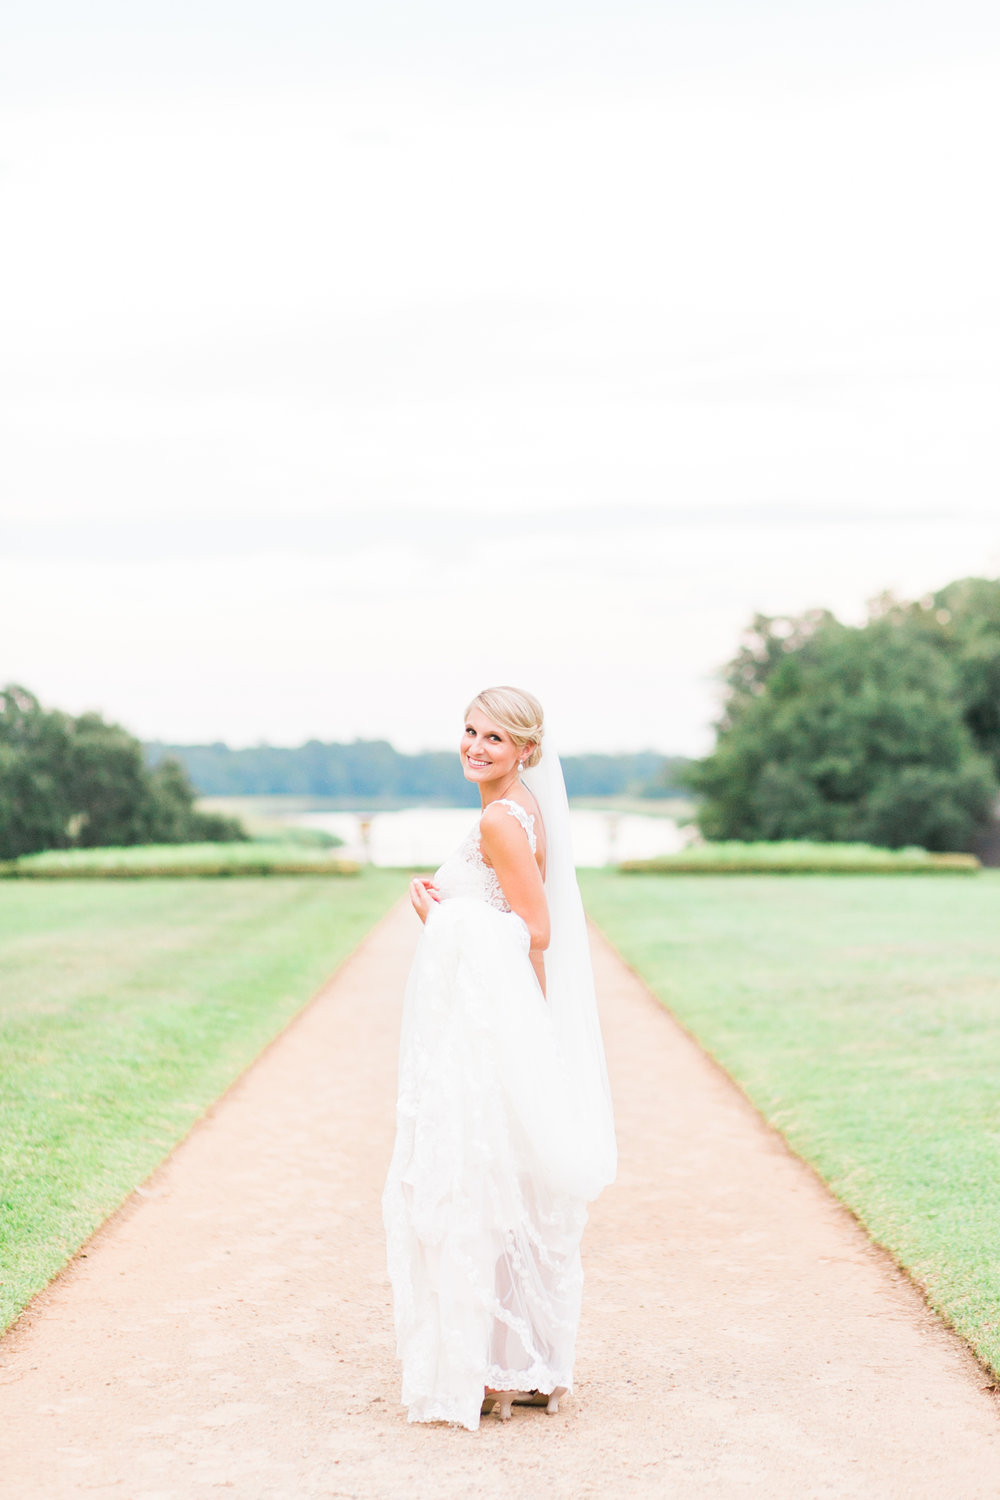 middletonplacebridals-96.jpg